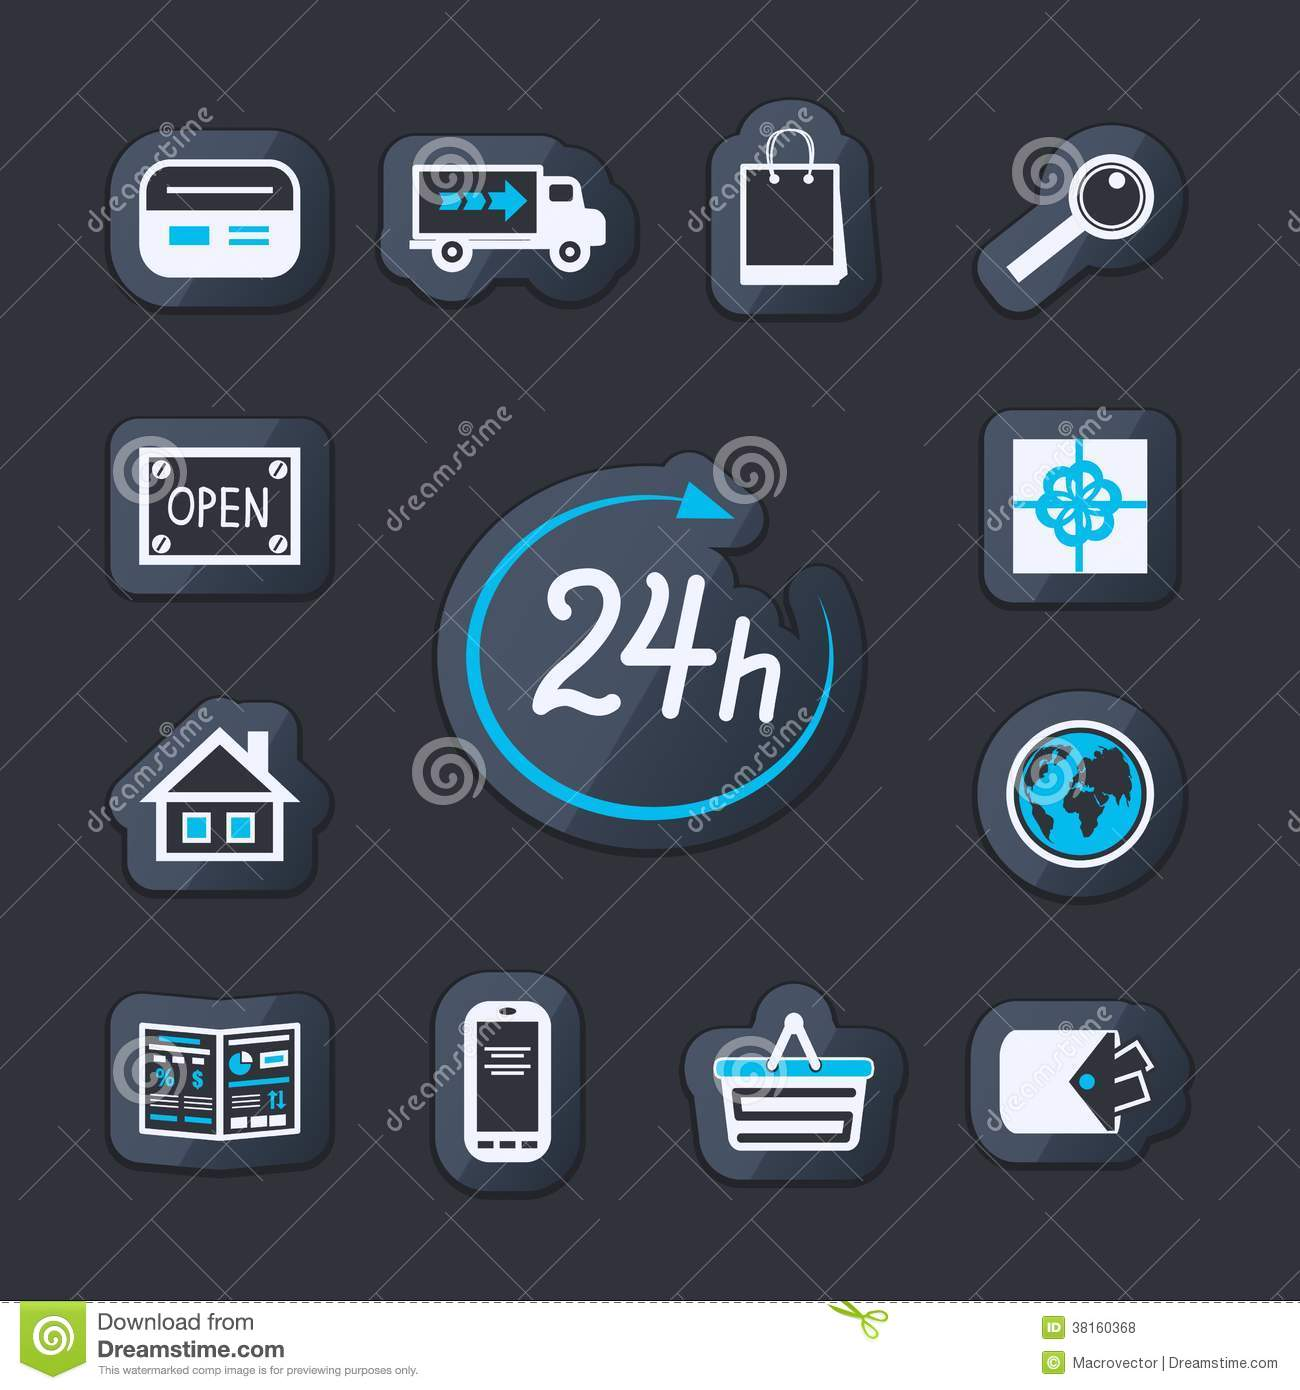 24 Internet Internet Website Store Open 24 Hours Stock Vector Illustration